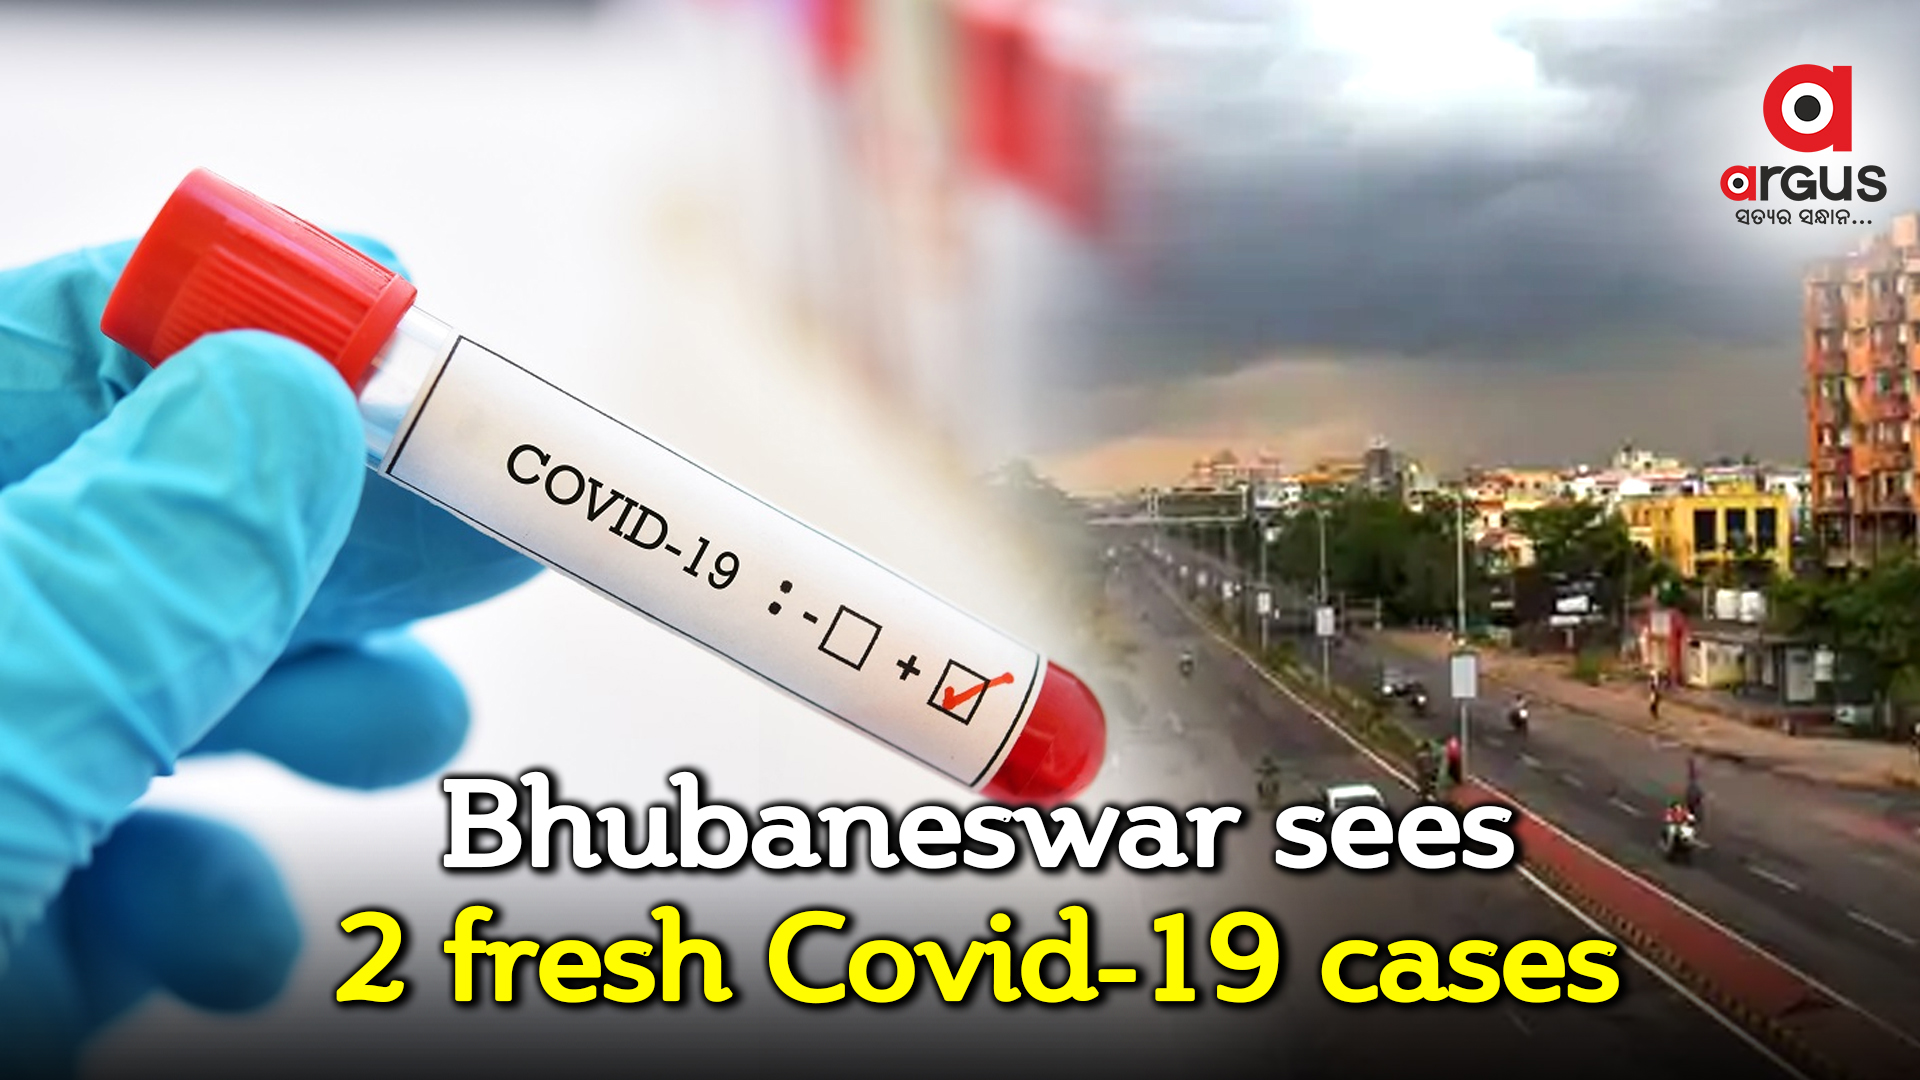 Bhubaneswar reports 2 new Covid-19 cases, 10 recoveries; Active cases stand at 107